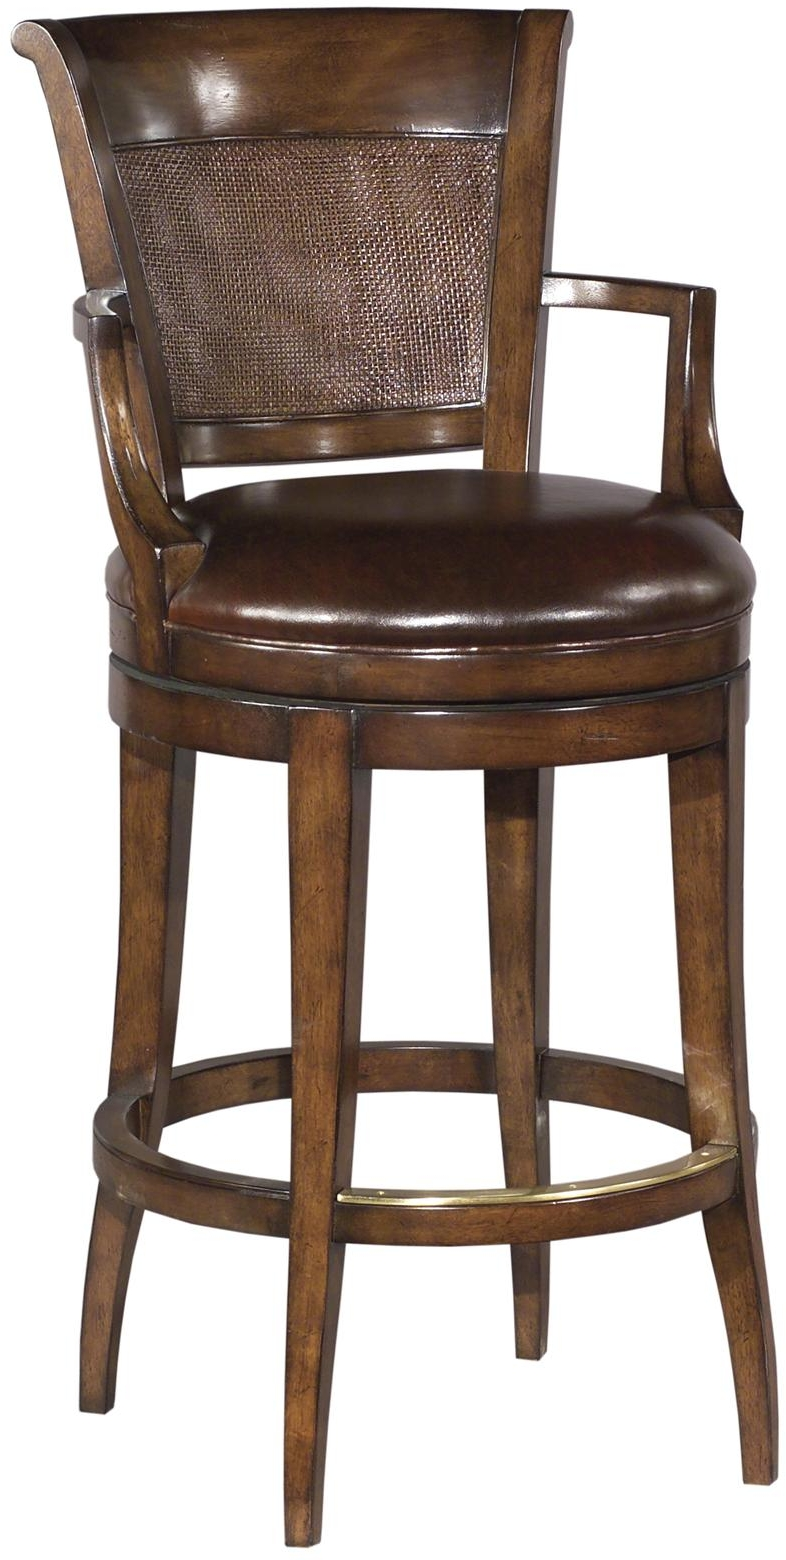 New Swivel Counter Stool Cane Panel Back Chocolate